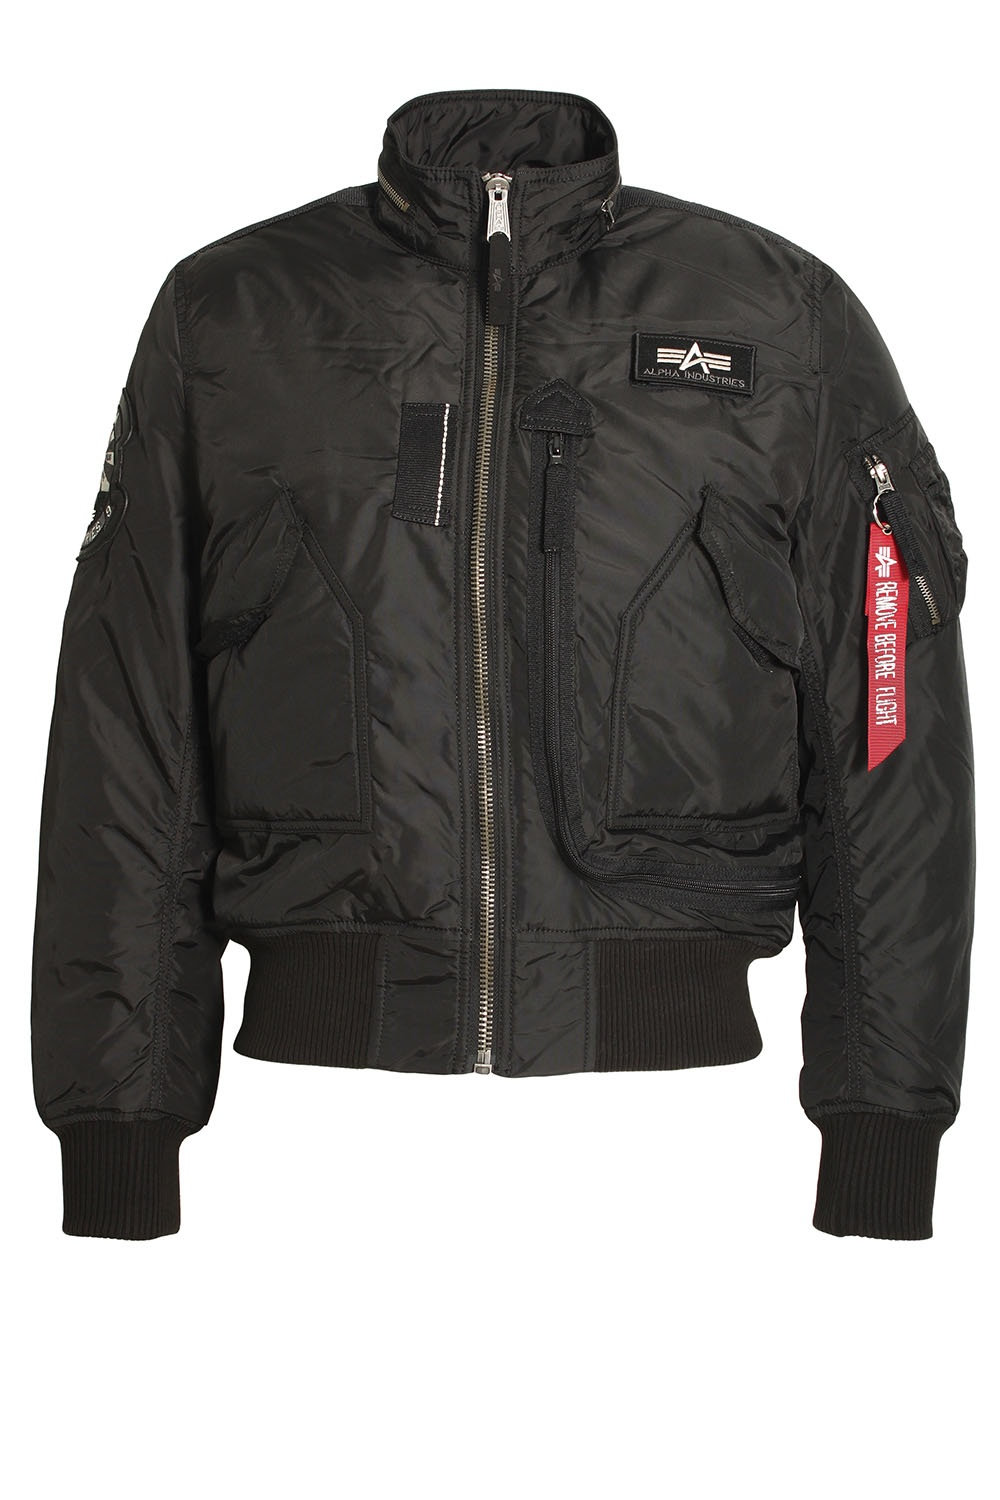 alphan industries engine bomber jacket shop alpha industries jackets. Black Bedroom Furniture Sets. Home Design Ideas